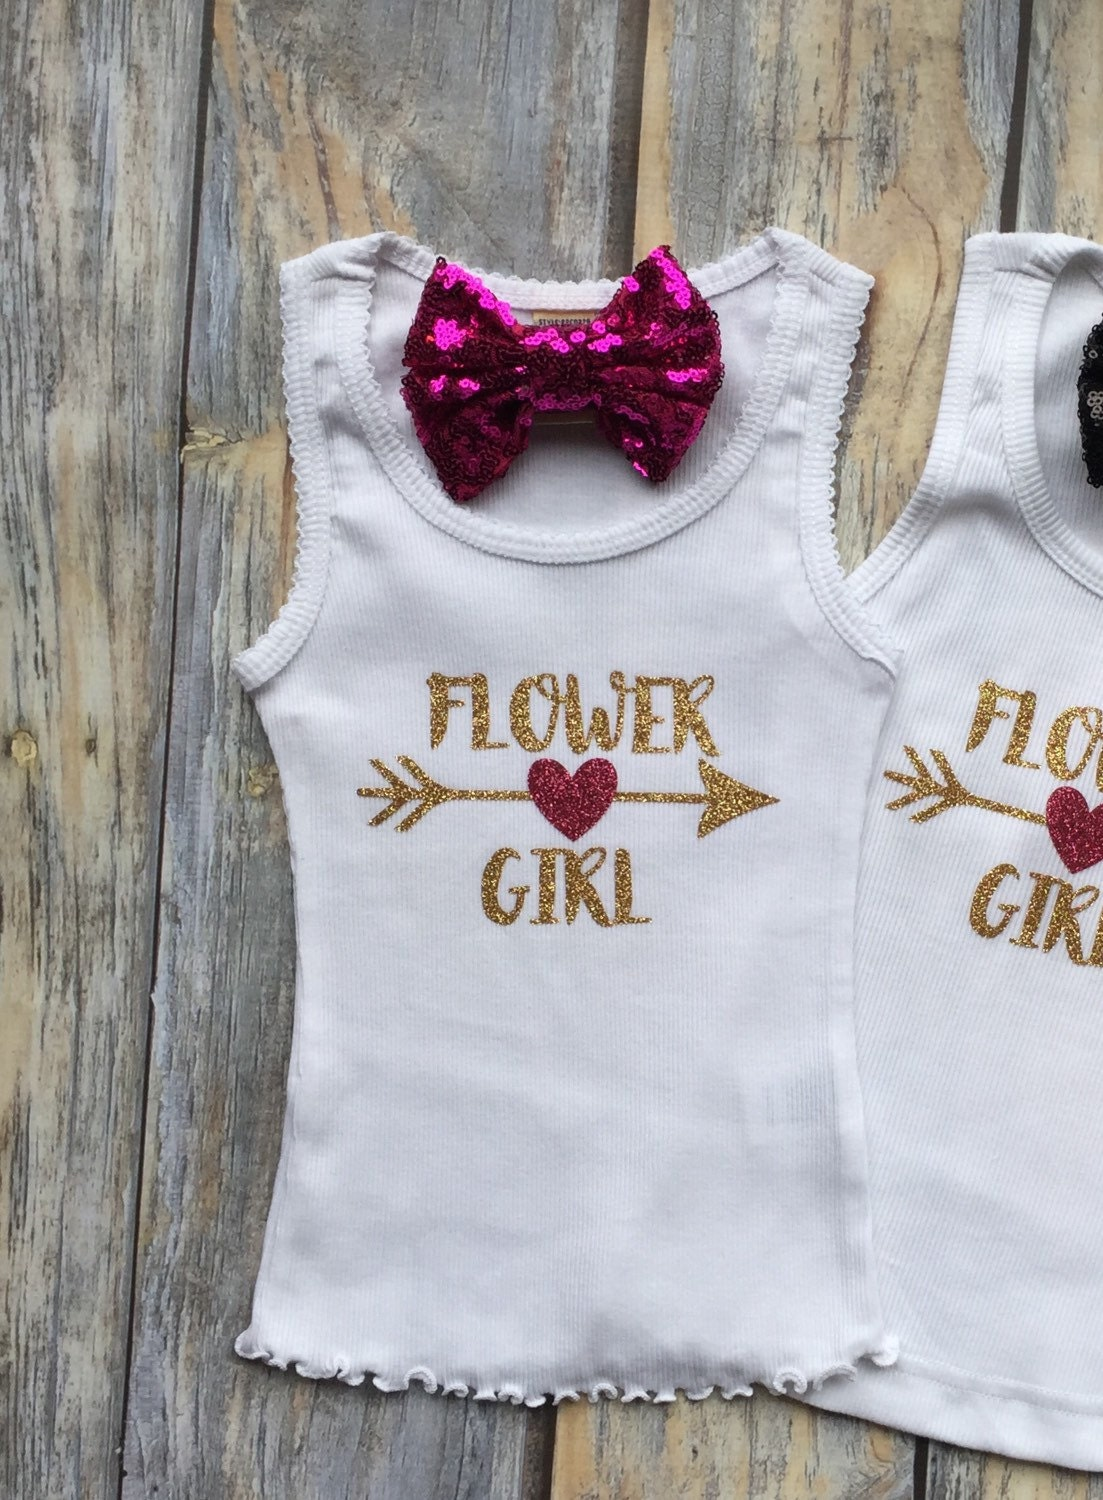 Flower Girl Shirt Bridal Party Gifts Bride Shirt Flower